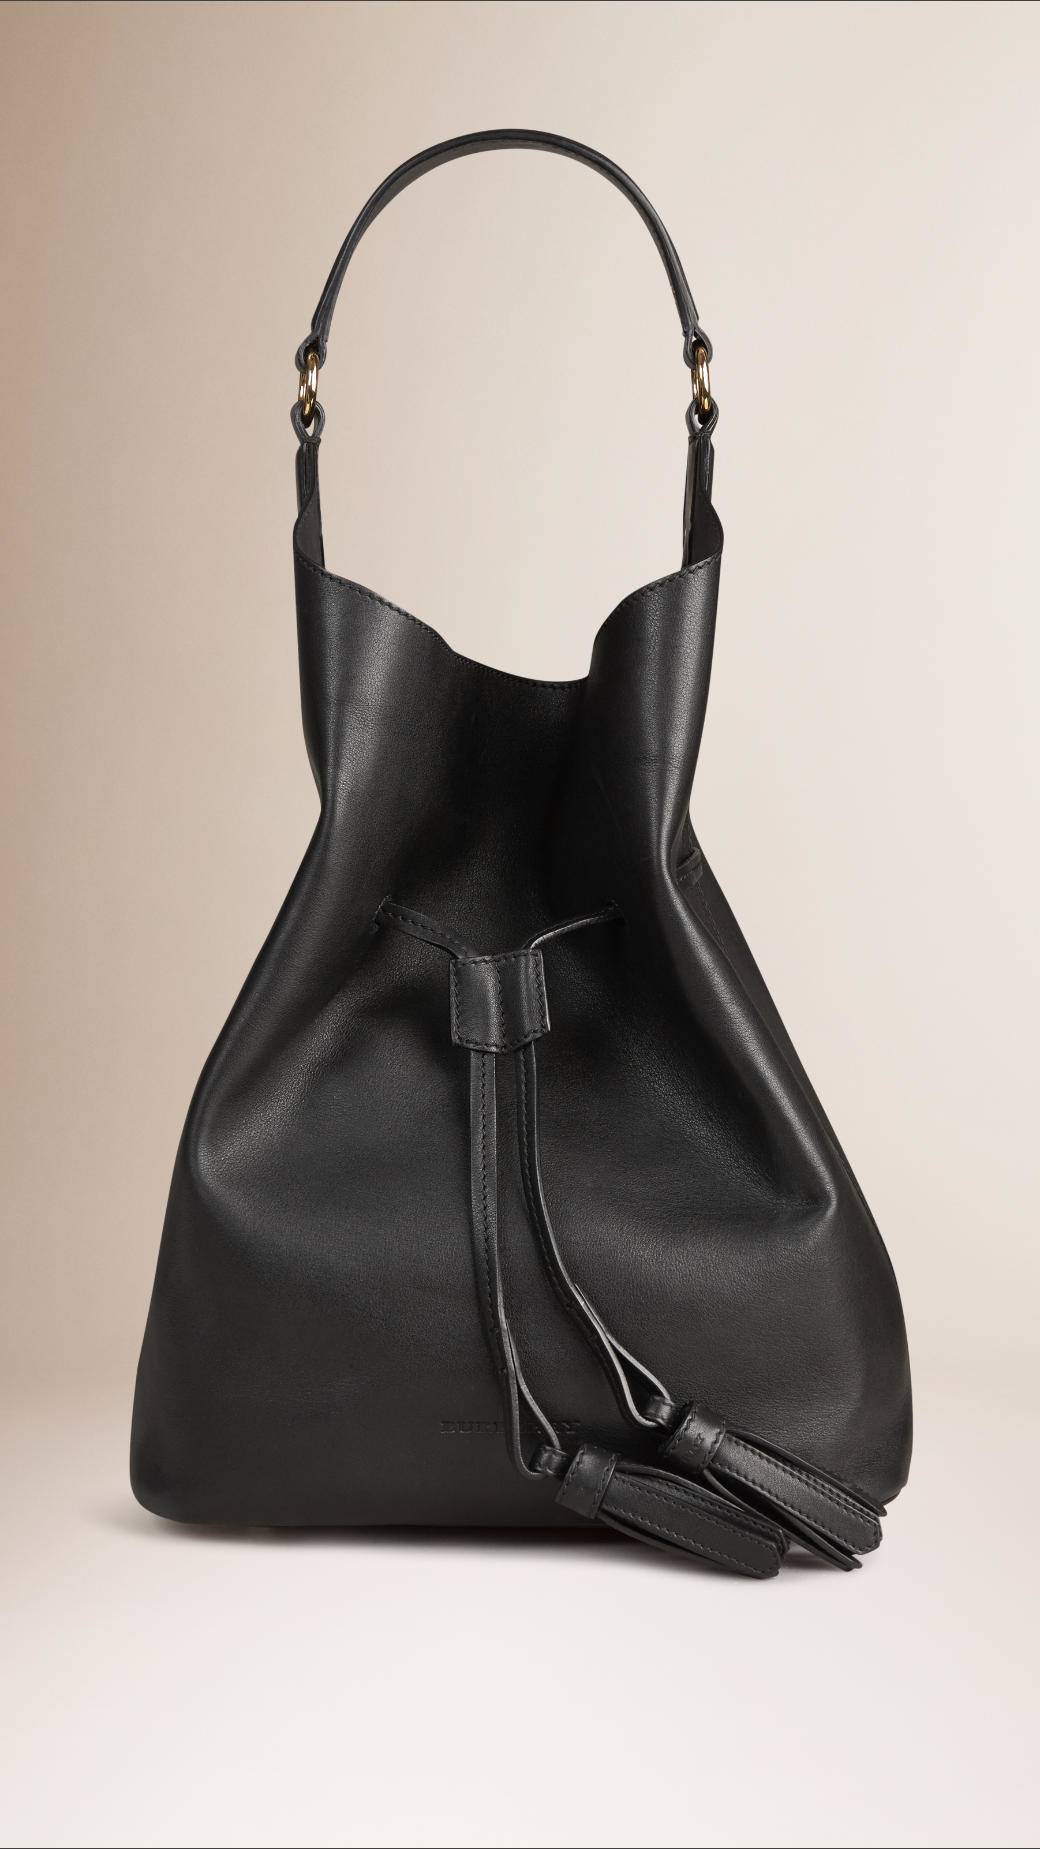 24f9a3477c8c Burberry The Large Ashby Leather Black Bag in Black - Lyst